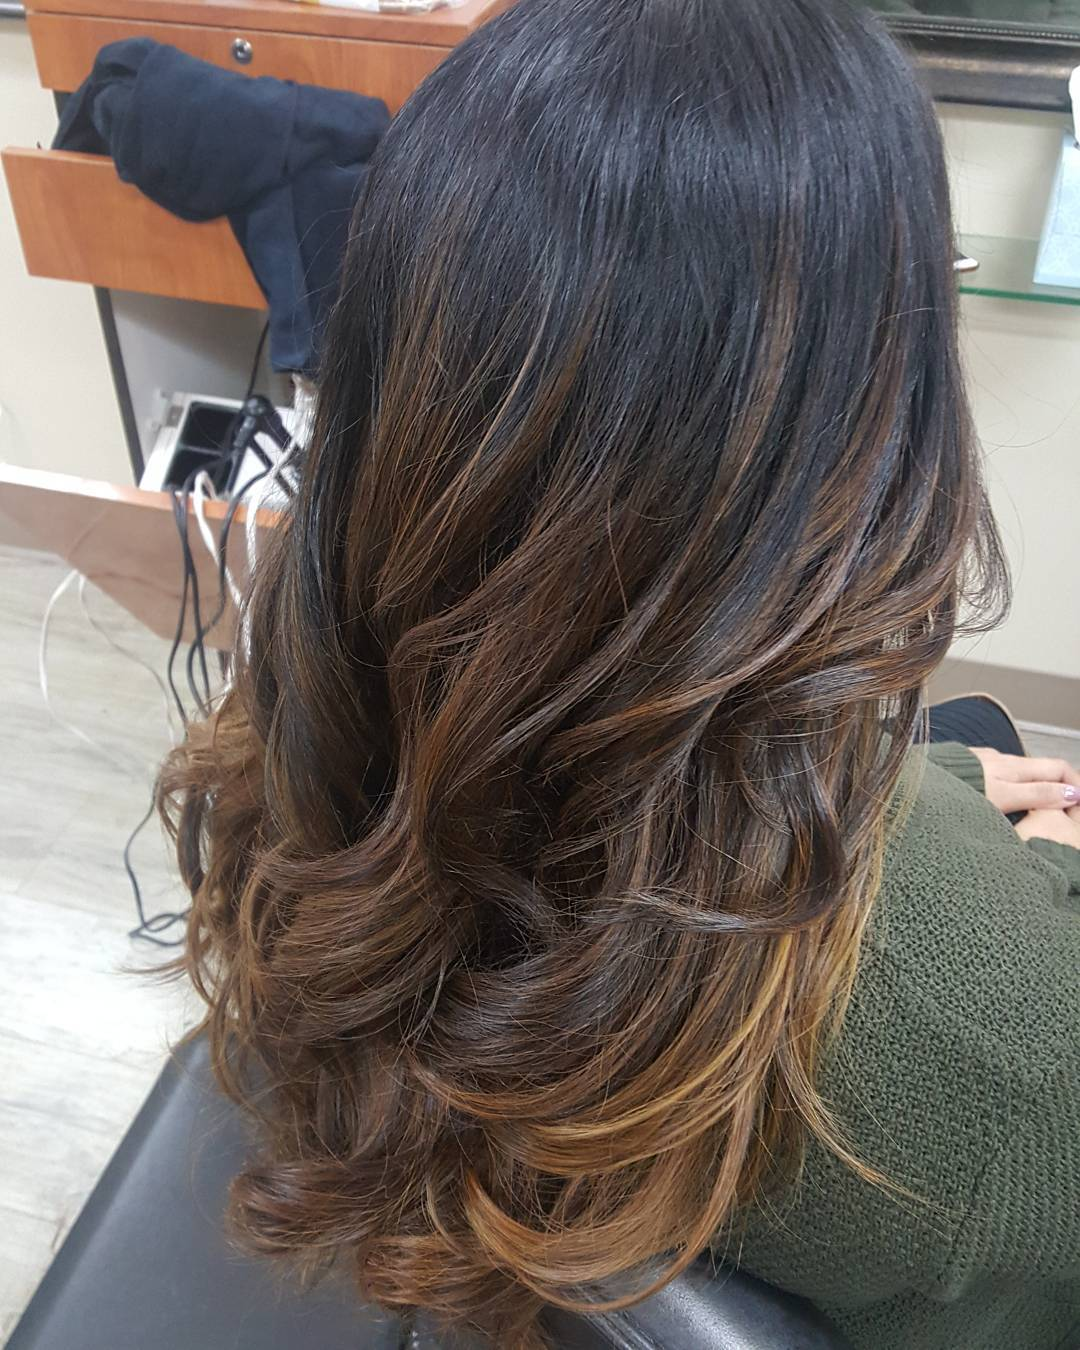 Hairstyle new 2018 photo